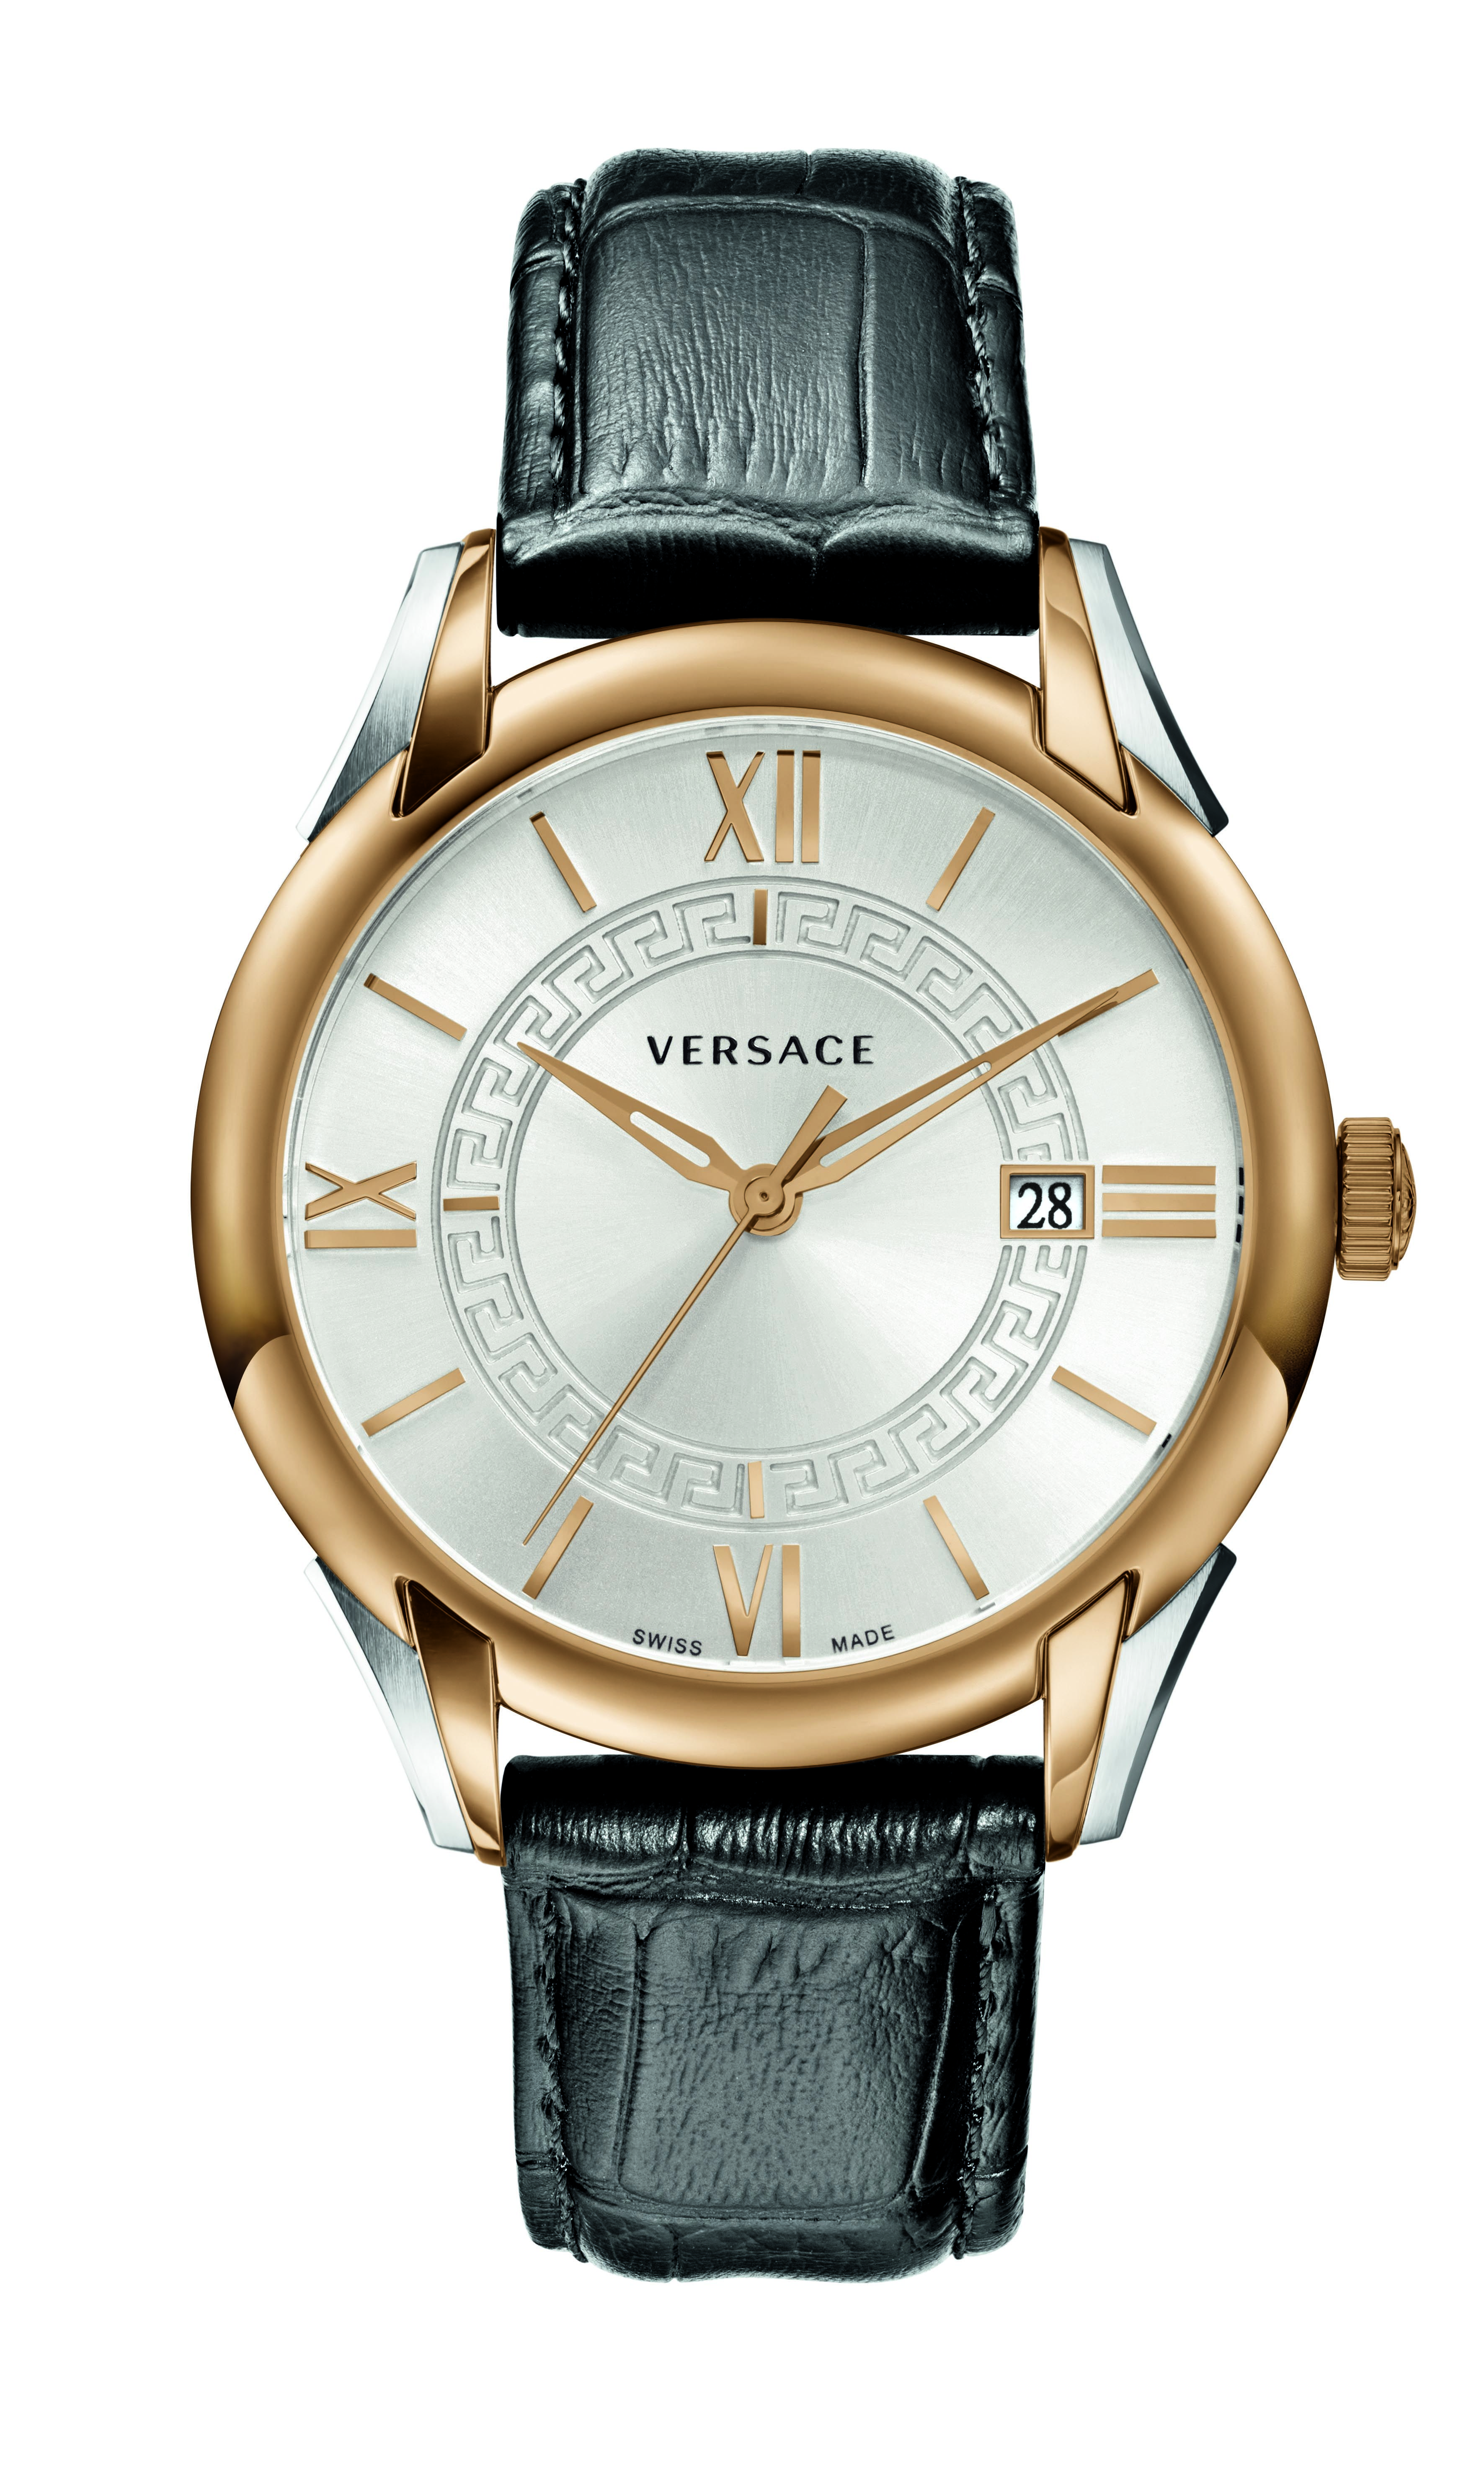 5d03006c The Versace Apollo black watch with rosegold case. #VersaceWatches ...